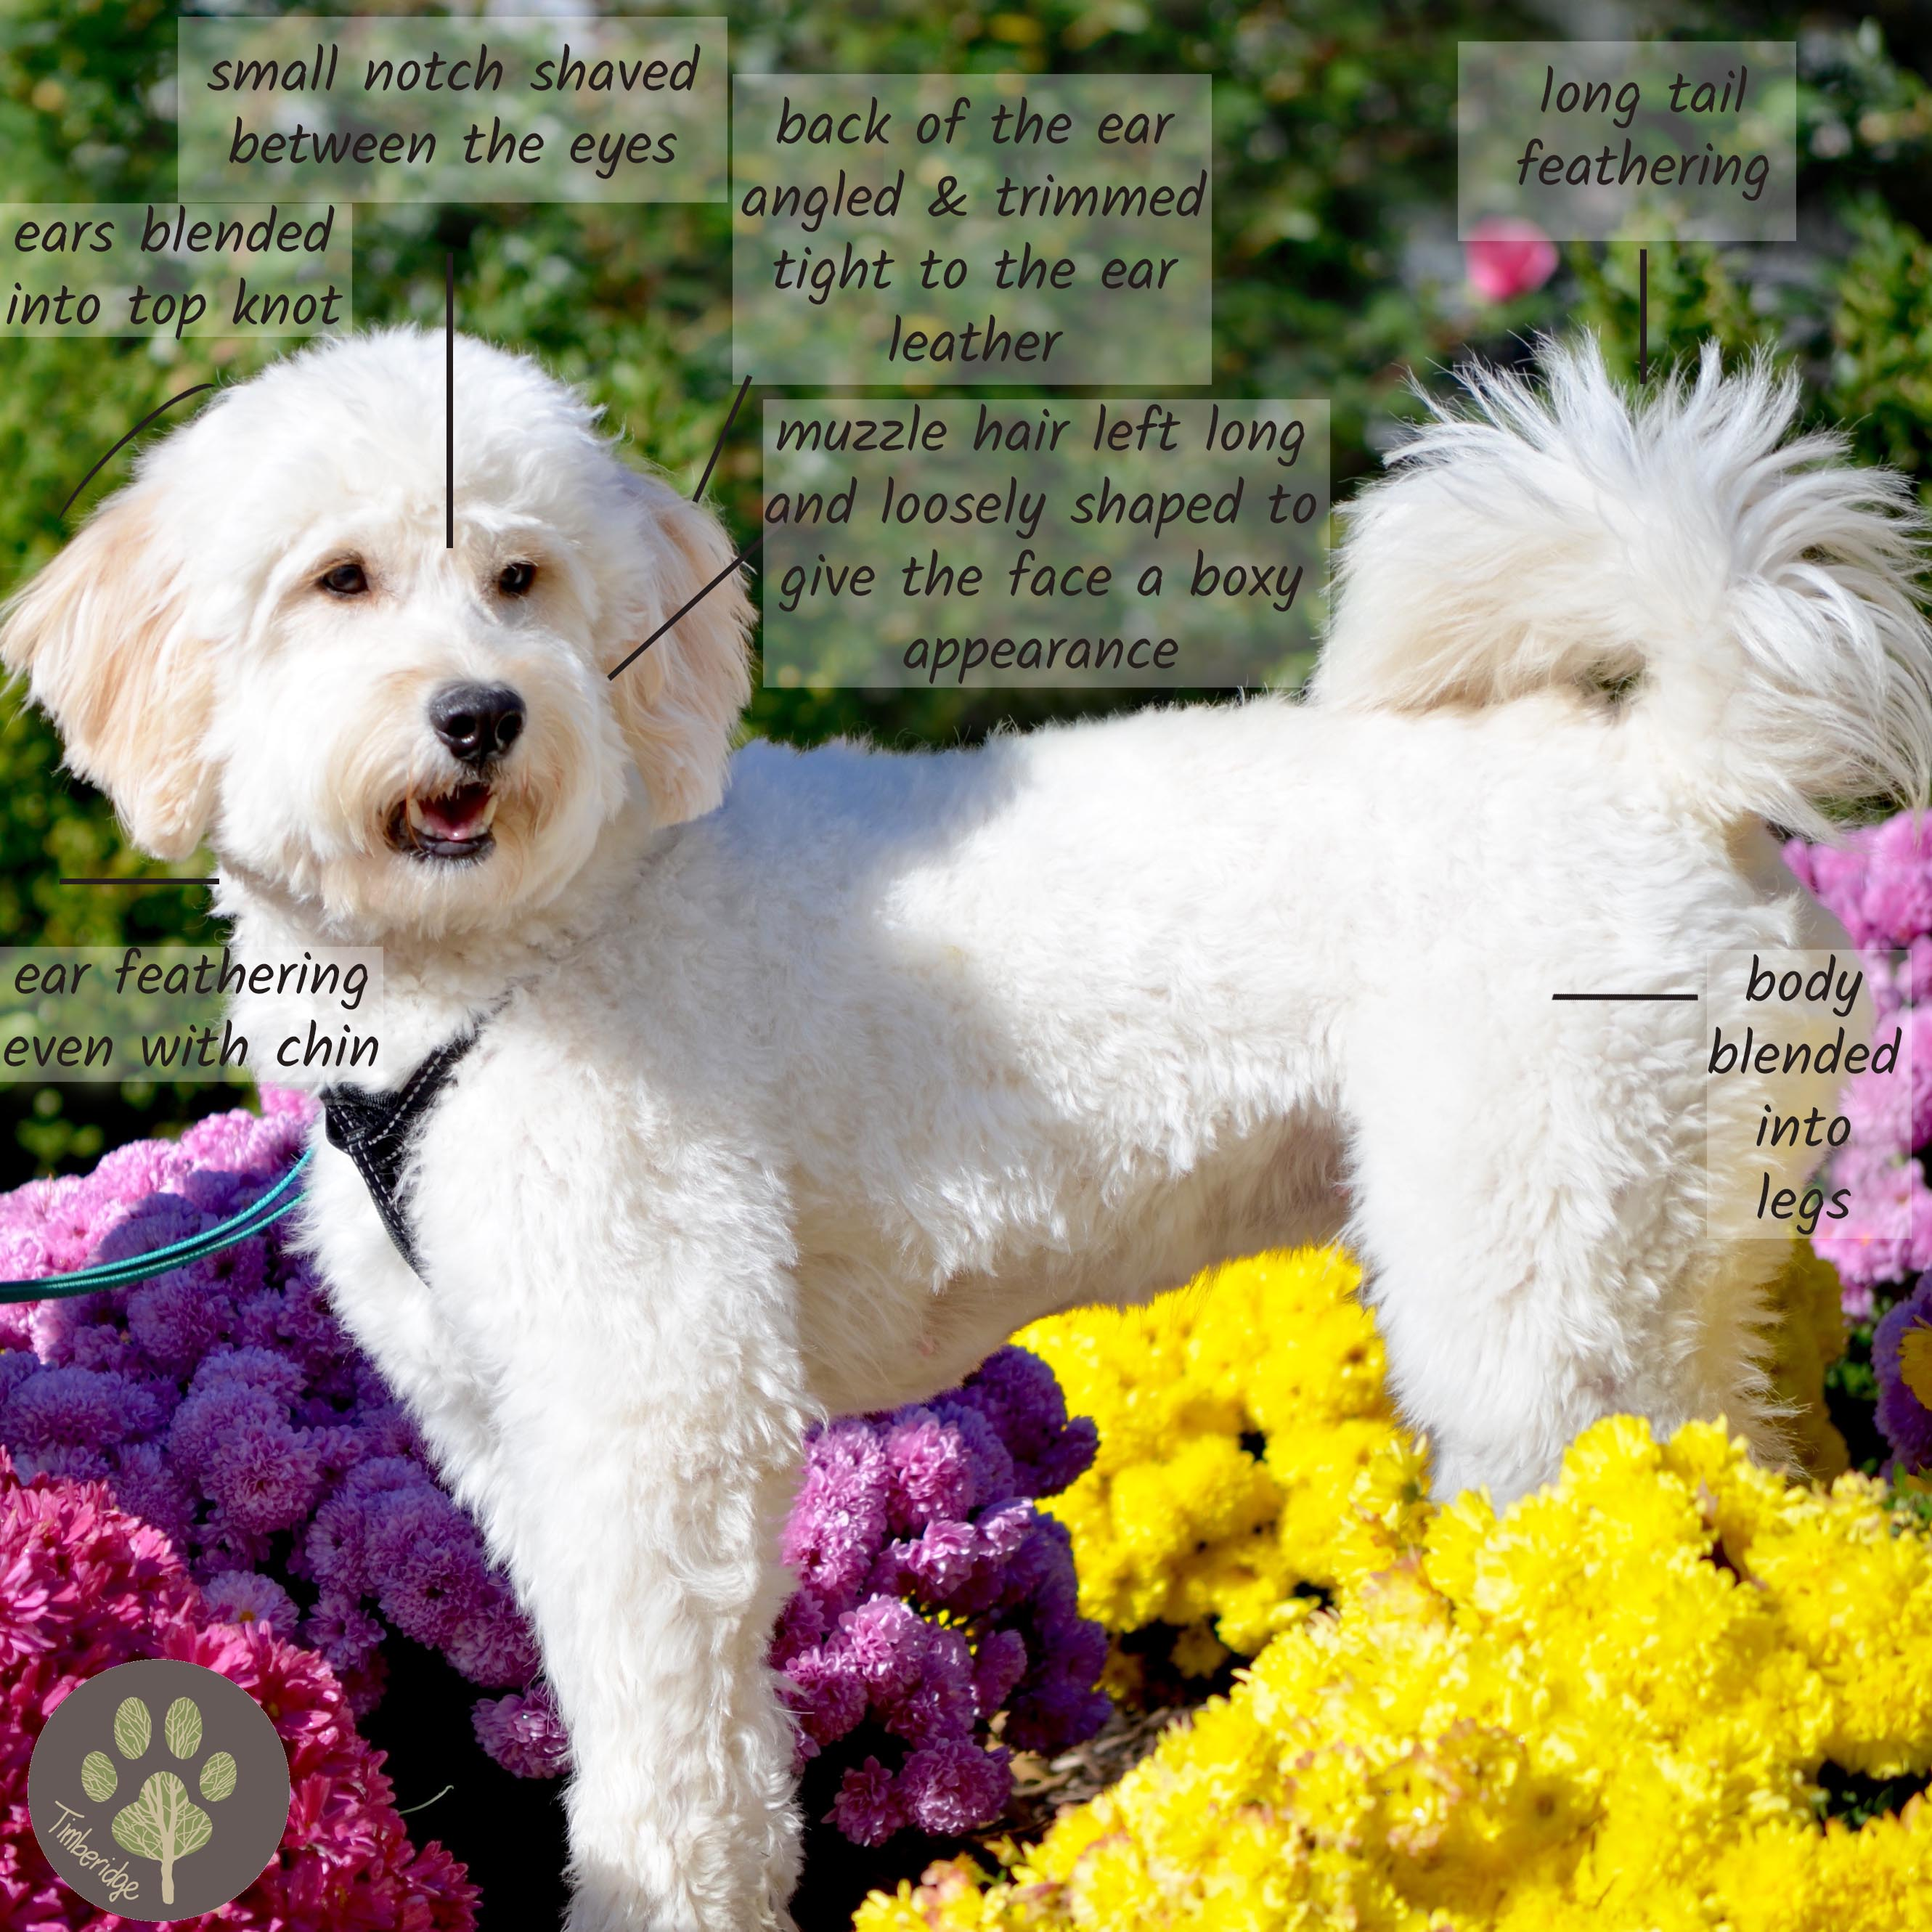 Goldendoodle Haircut Pictures - Timberidge Goldendoodles